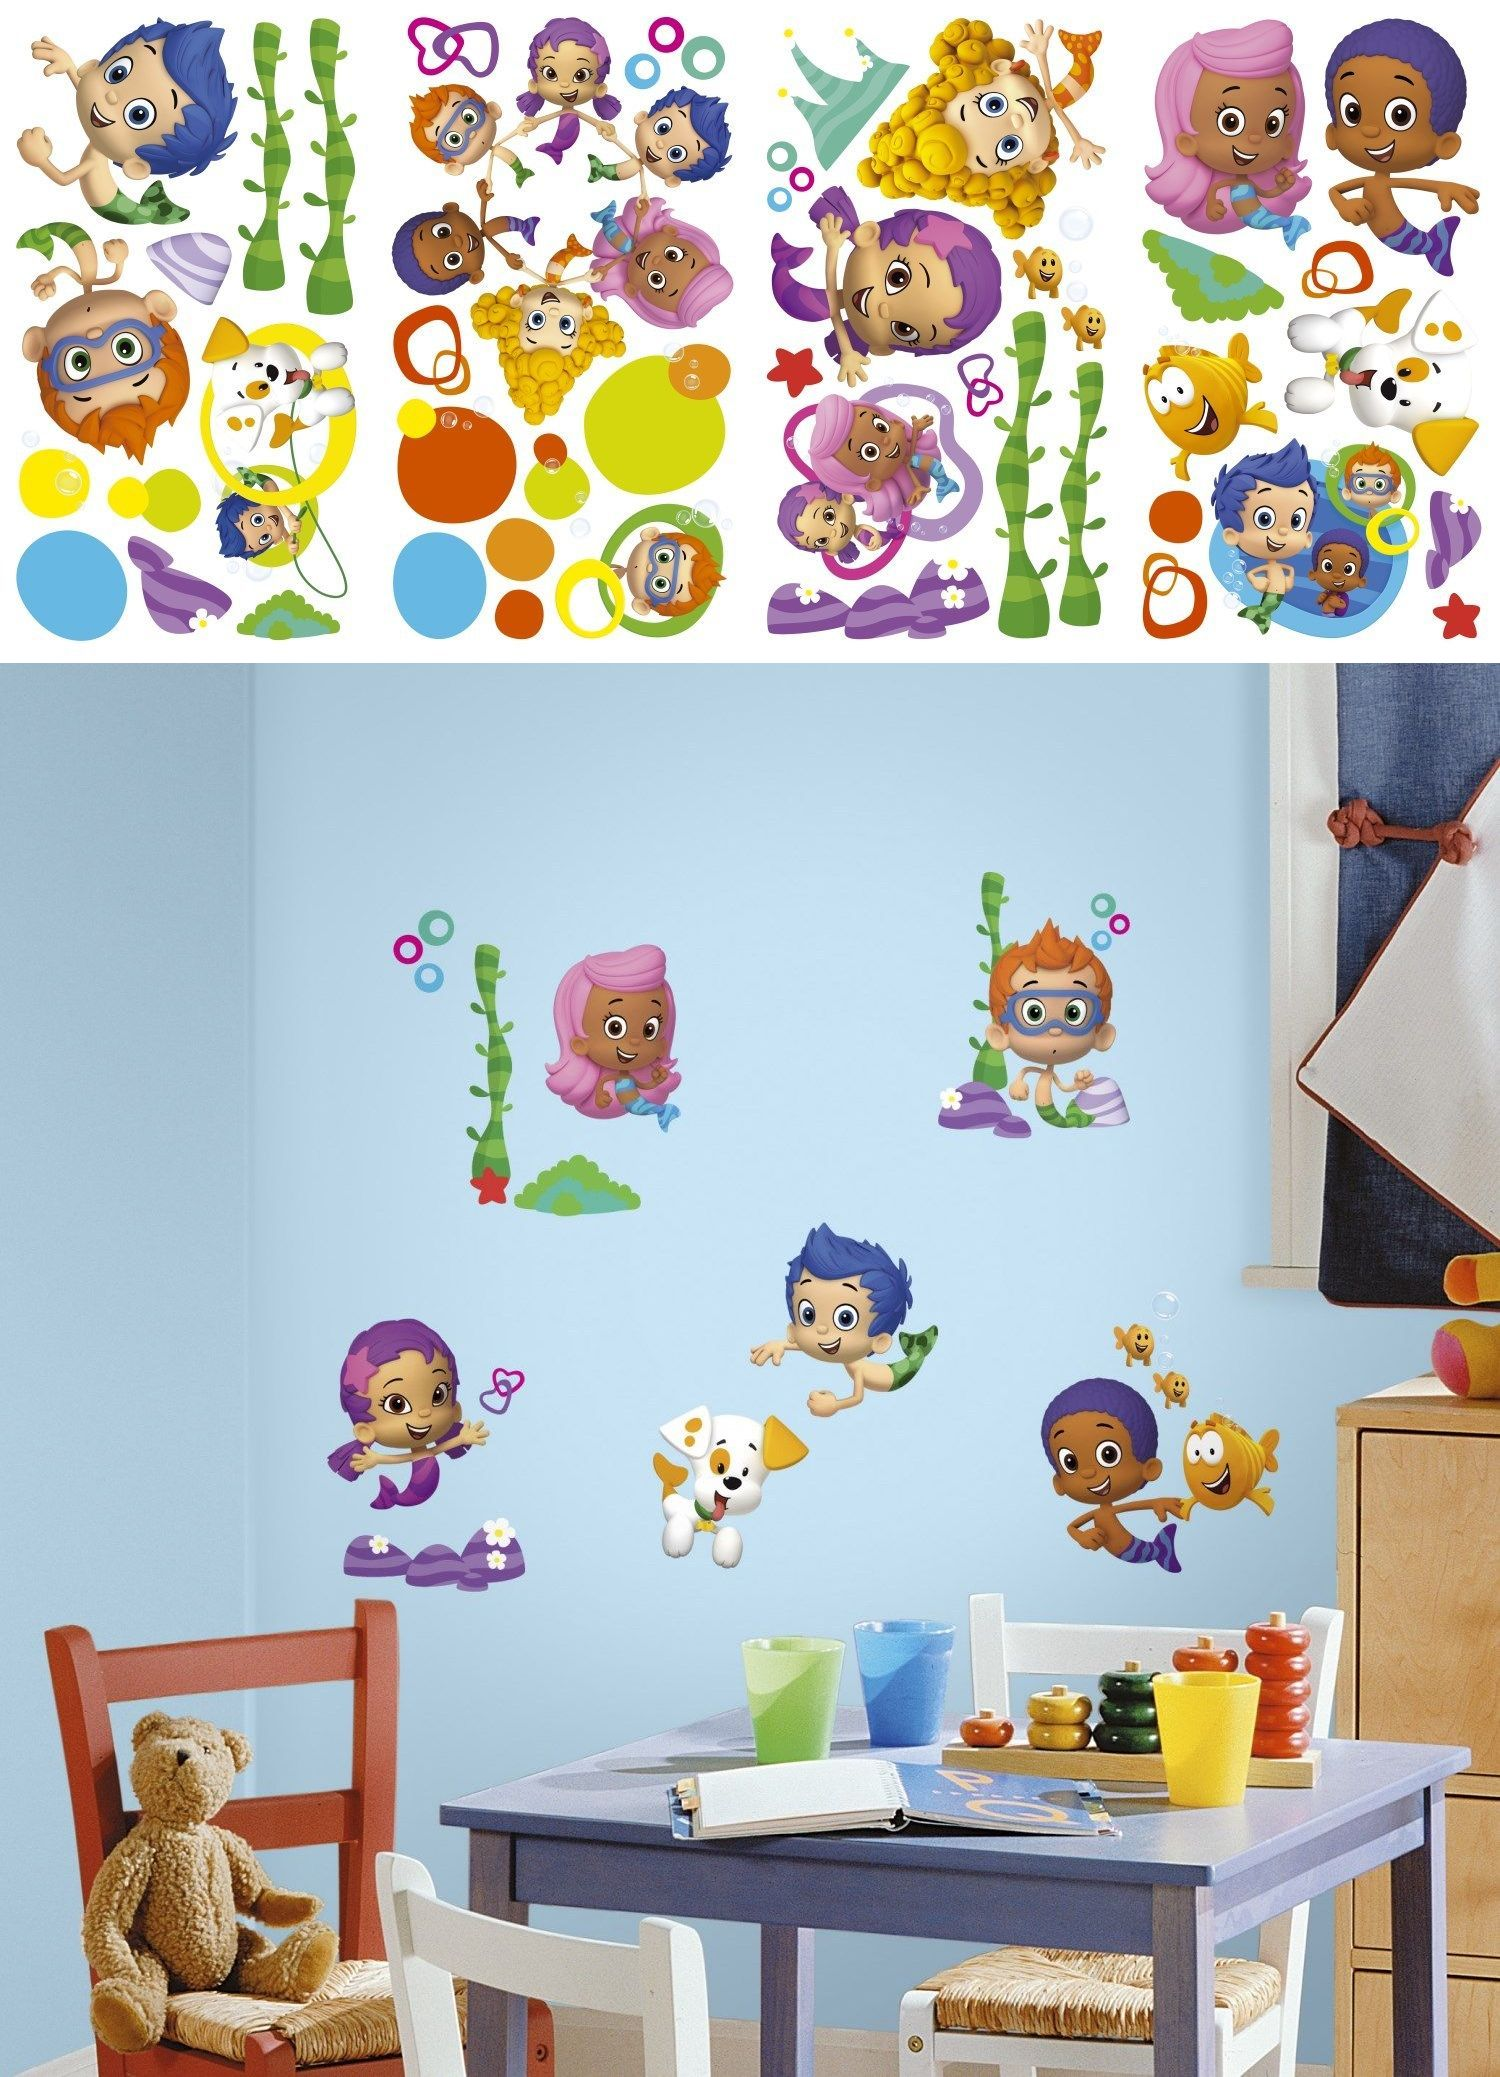 Bedroom Playroom And Dorm D Cor 115970 New Bubble Guppies Wall Decals Nickelodeon Stickers Kids Bedroom T Toy Room Decor Kids Bedroom Toys Wall Decor Stickers Bubble guppies bedroom decor